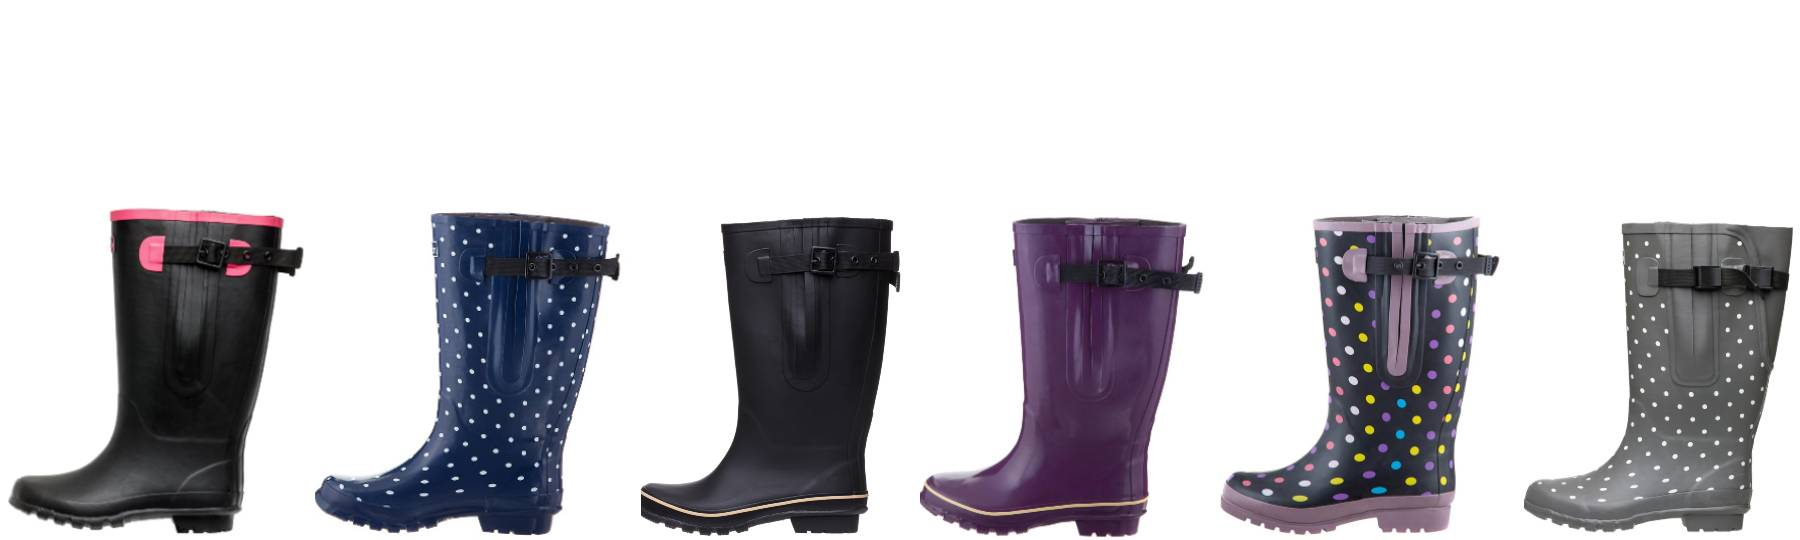 Wide Calf Rain Boots that Fit Curves